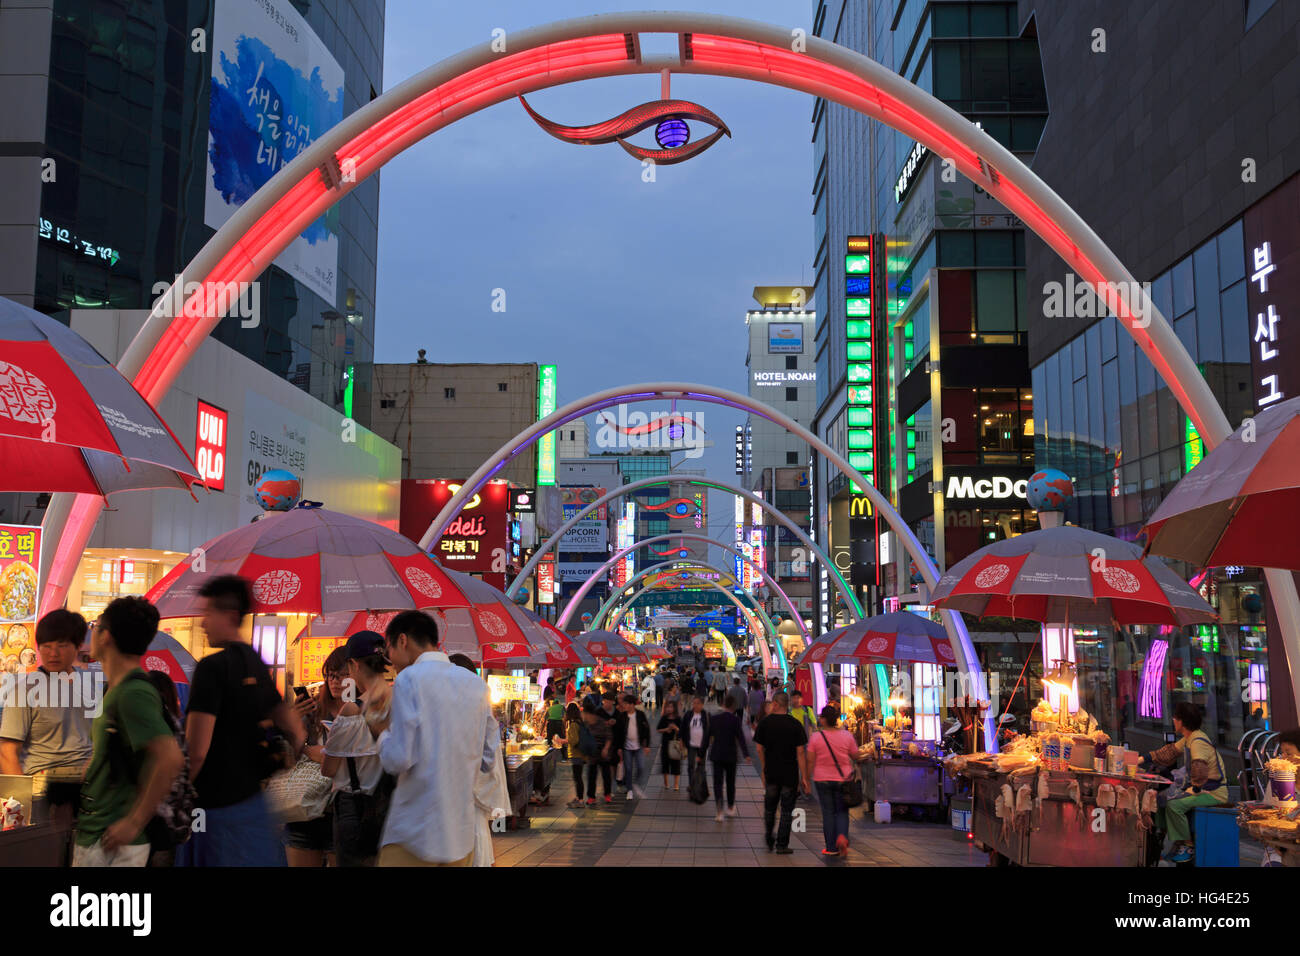 BIFF Square, Nampo District, Busan, South Korea, Asia Stock Photo